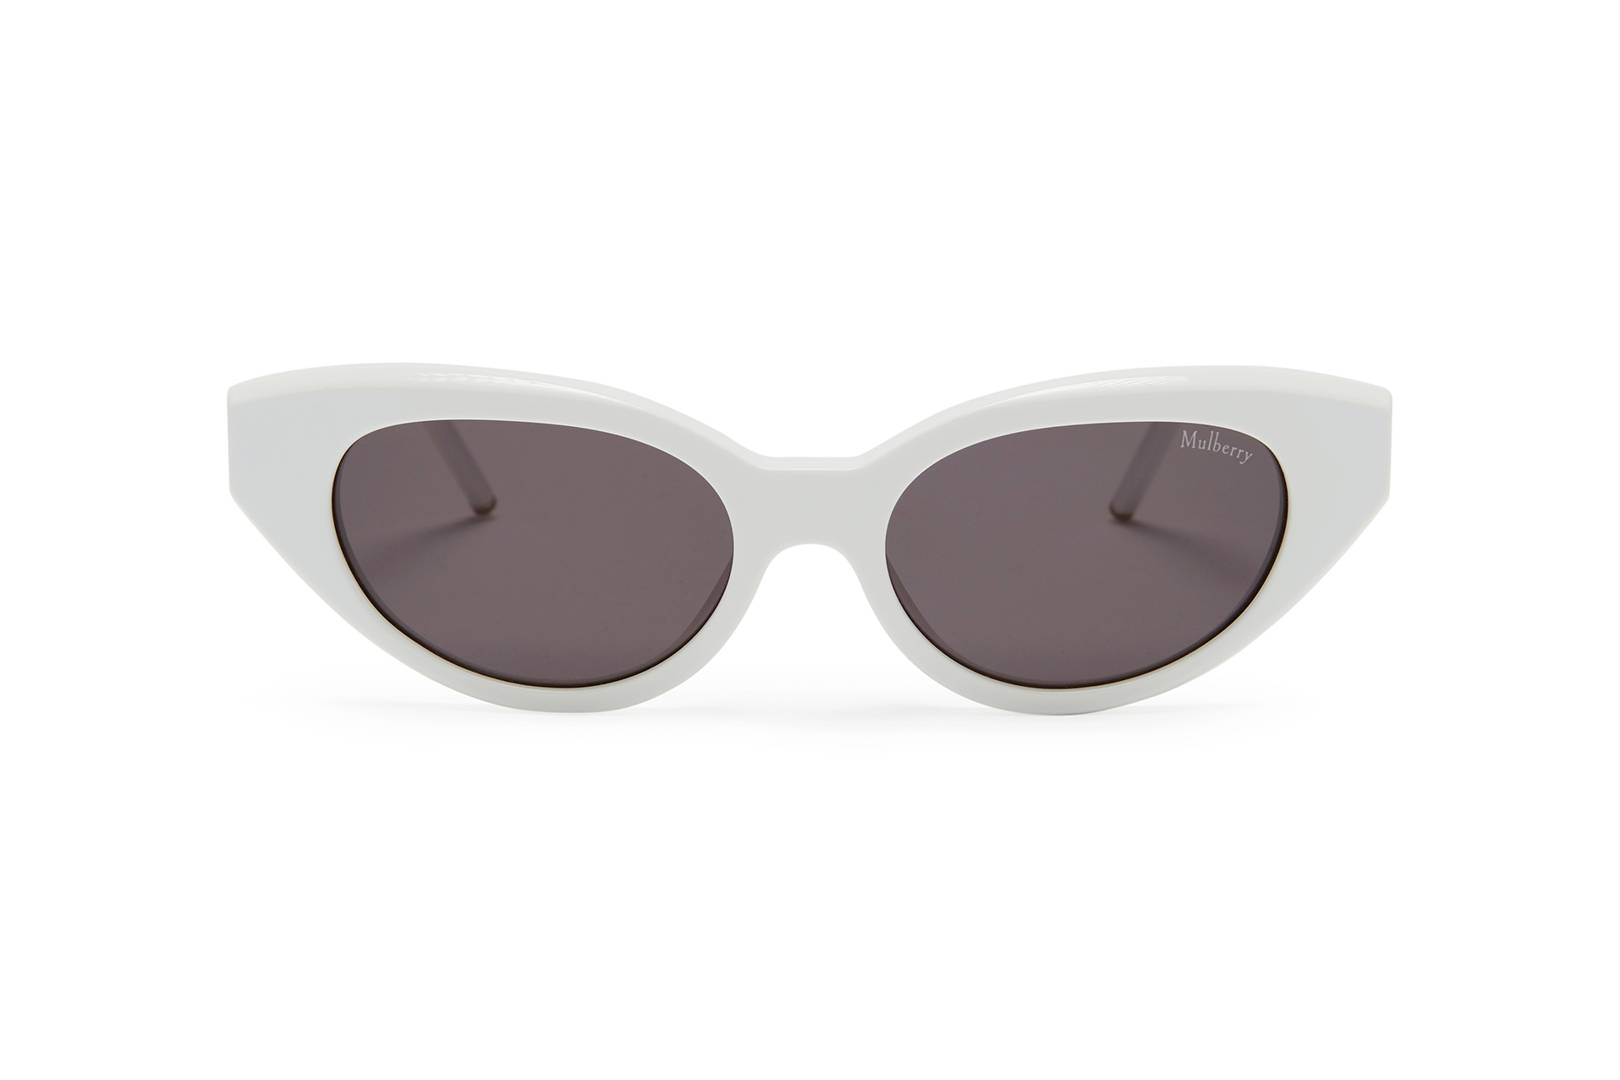 8ff47ad87d92 Mulberry Launch Sunglasses For The First Time Ever | Glamour UK